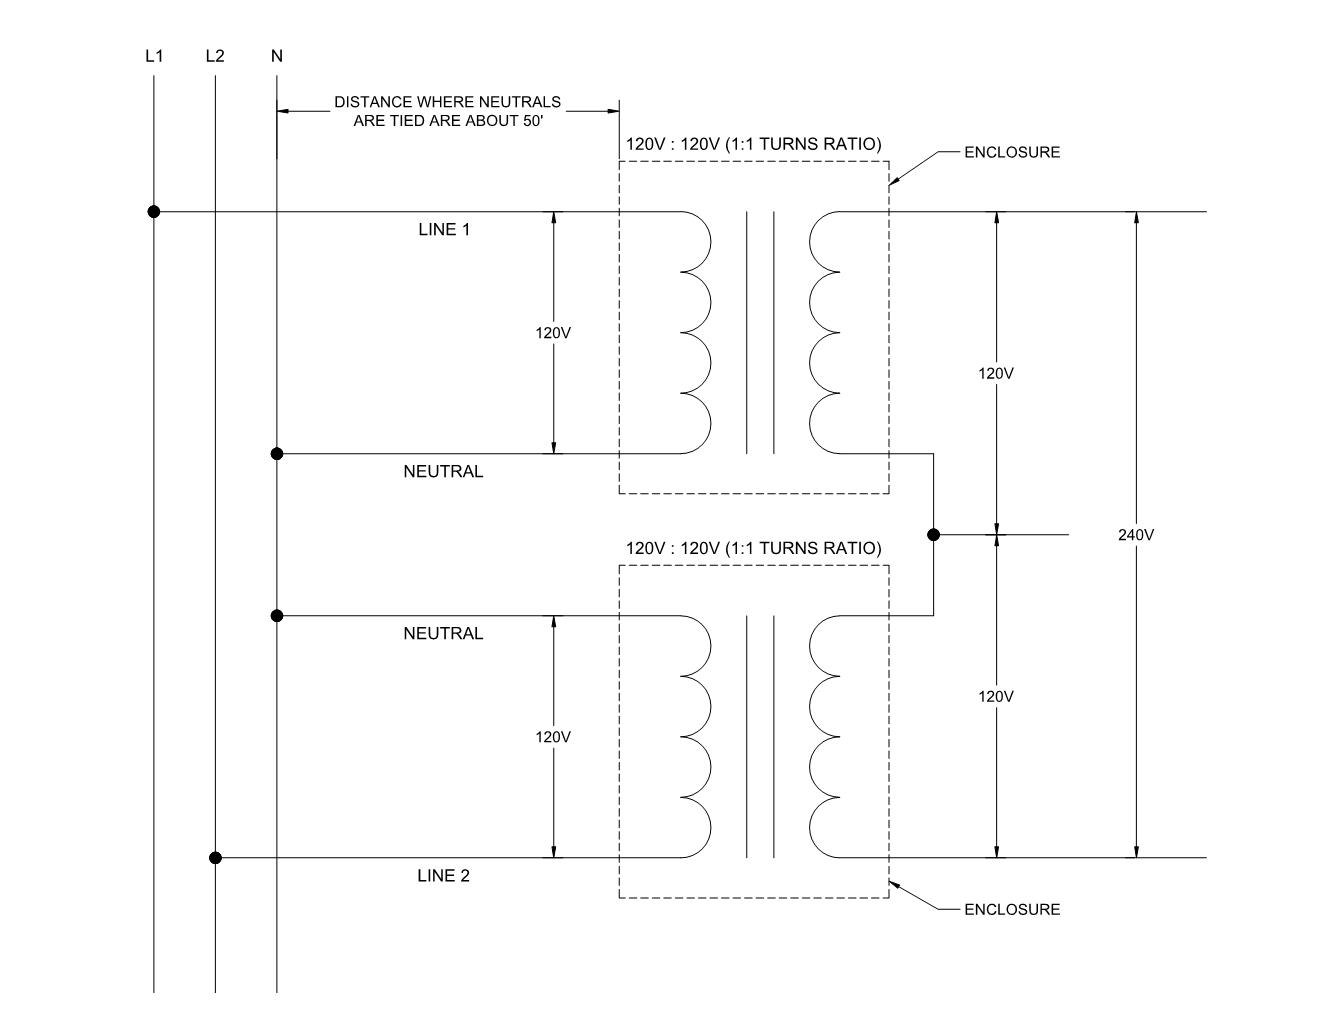 hight resolution of two 120v isolation transformers secondary tied primary isolated